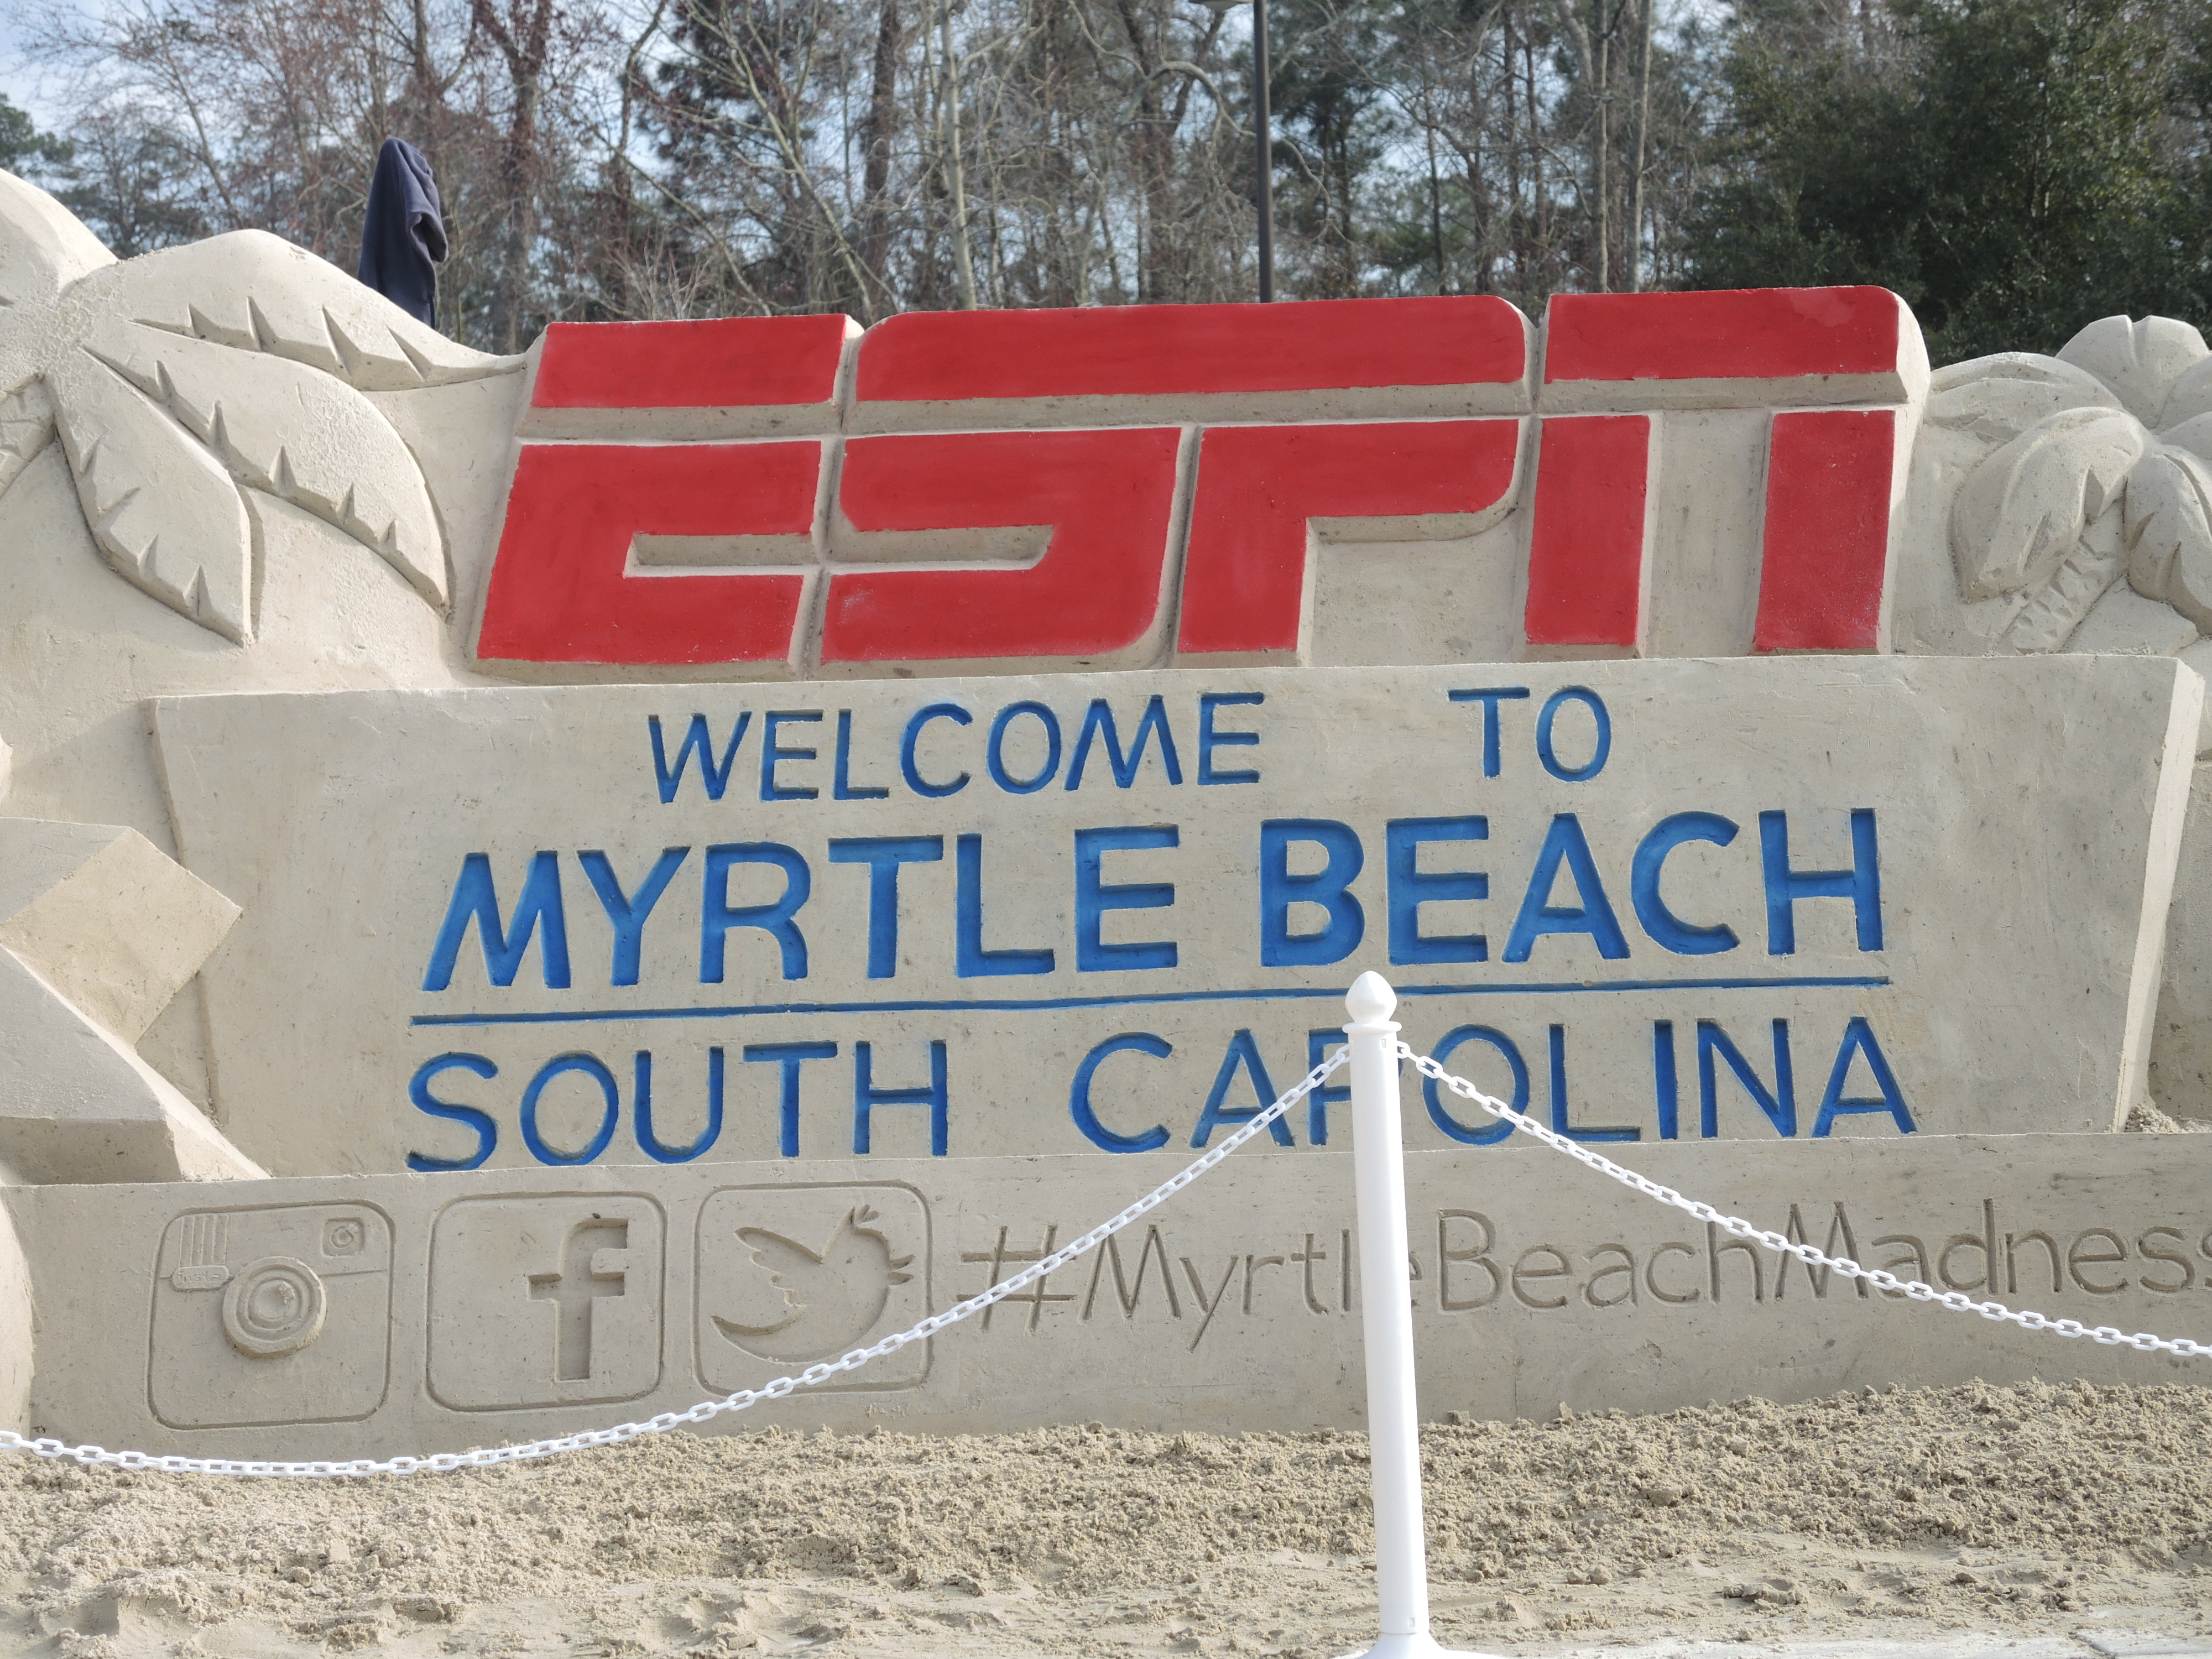 The ESPN/Welcome to Myrtle Beach portion of the structure.